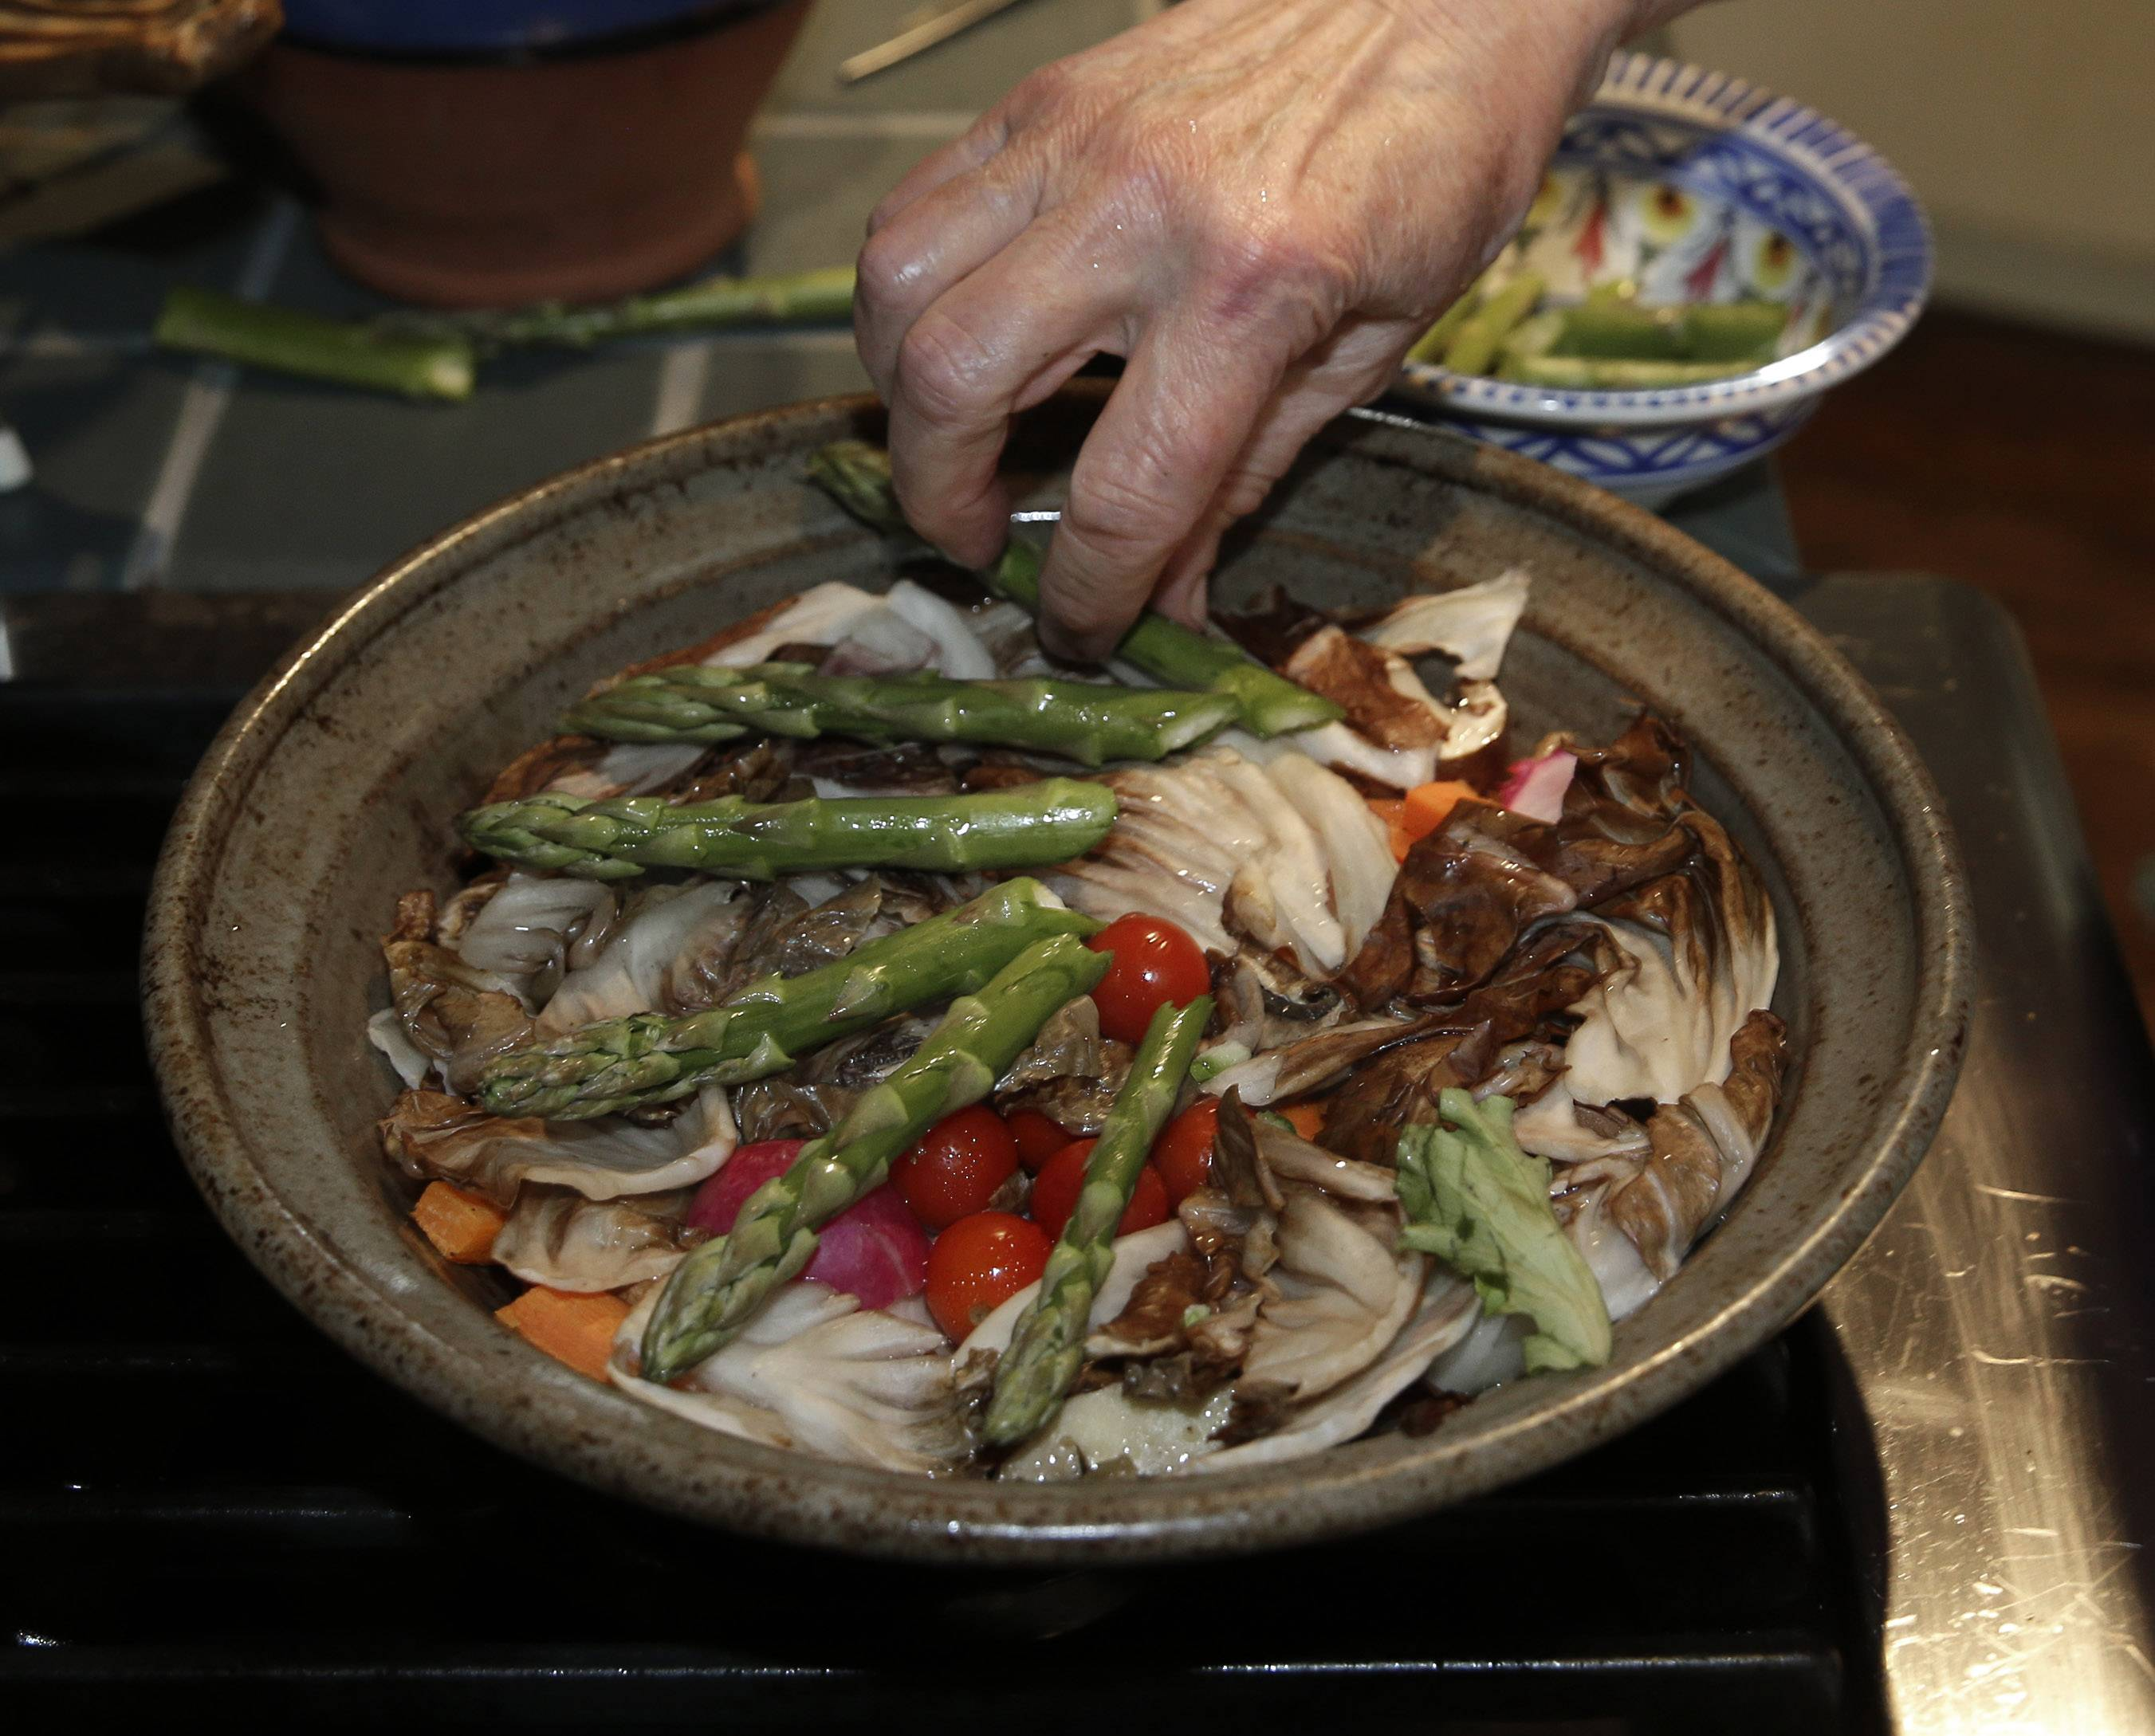 Cookbook author Paula Wolfert places asparagus in with other vegetables to slow cook for lunch at her home in Sonoma, Calif. Wolfert spent more than 50 years researching and writing about food. Now she's enlisting food as an ally in a fight to stay mentally sharp.